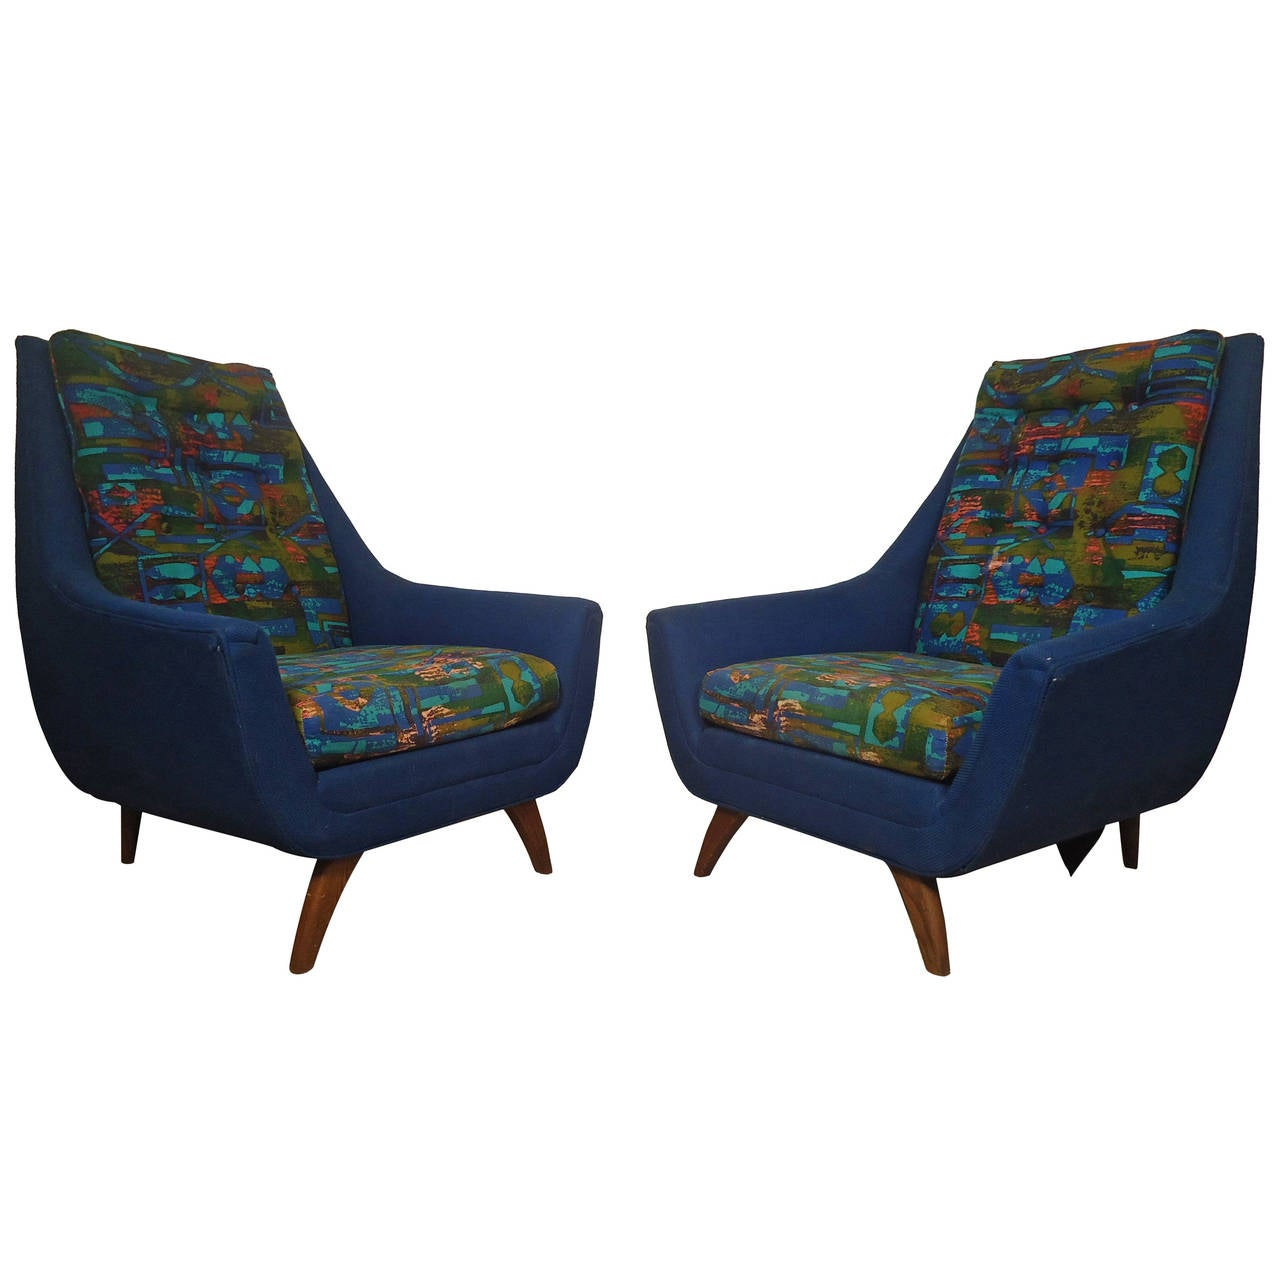 Midcentury Pair of Upholstered Adrian Pearsall Lounge Chairs